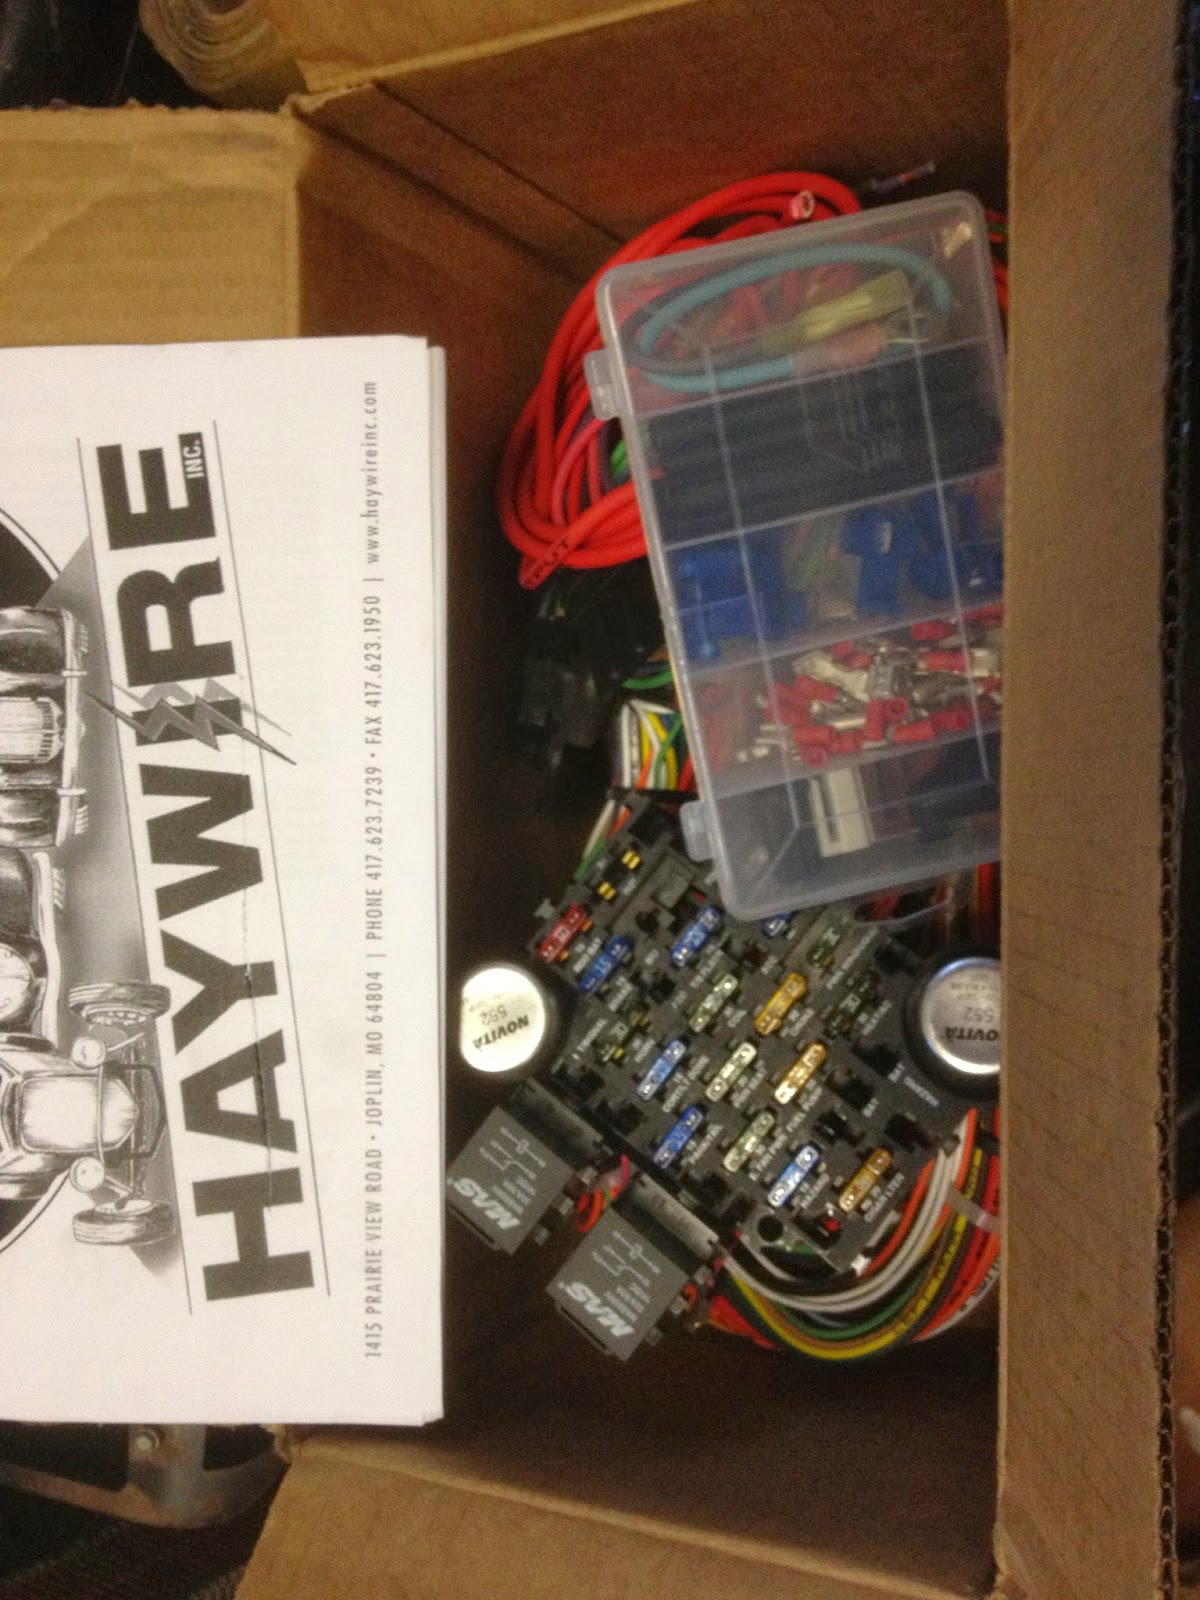 The kit from Haywire arrived here very quickly and is very complete. The  kit is pretty self explanatory, but if you run into a question, give them a  call.